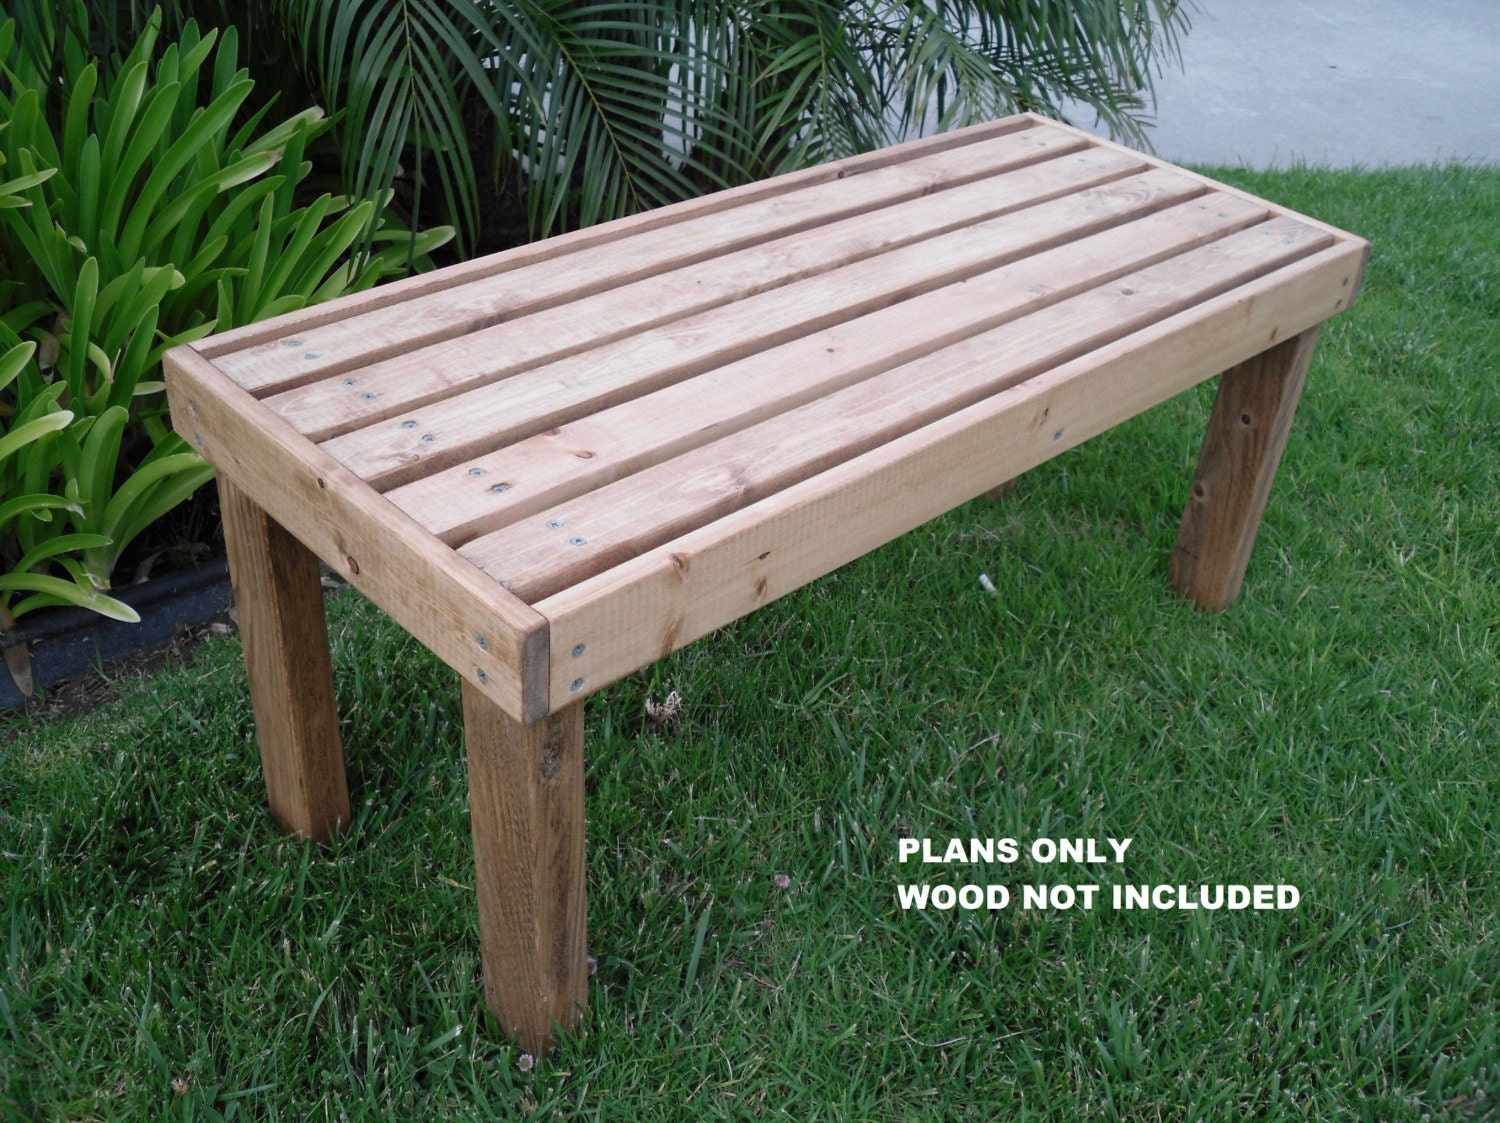 DIY PLANS To Make Flat Bench Outdoor Furniture For